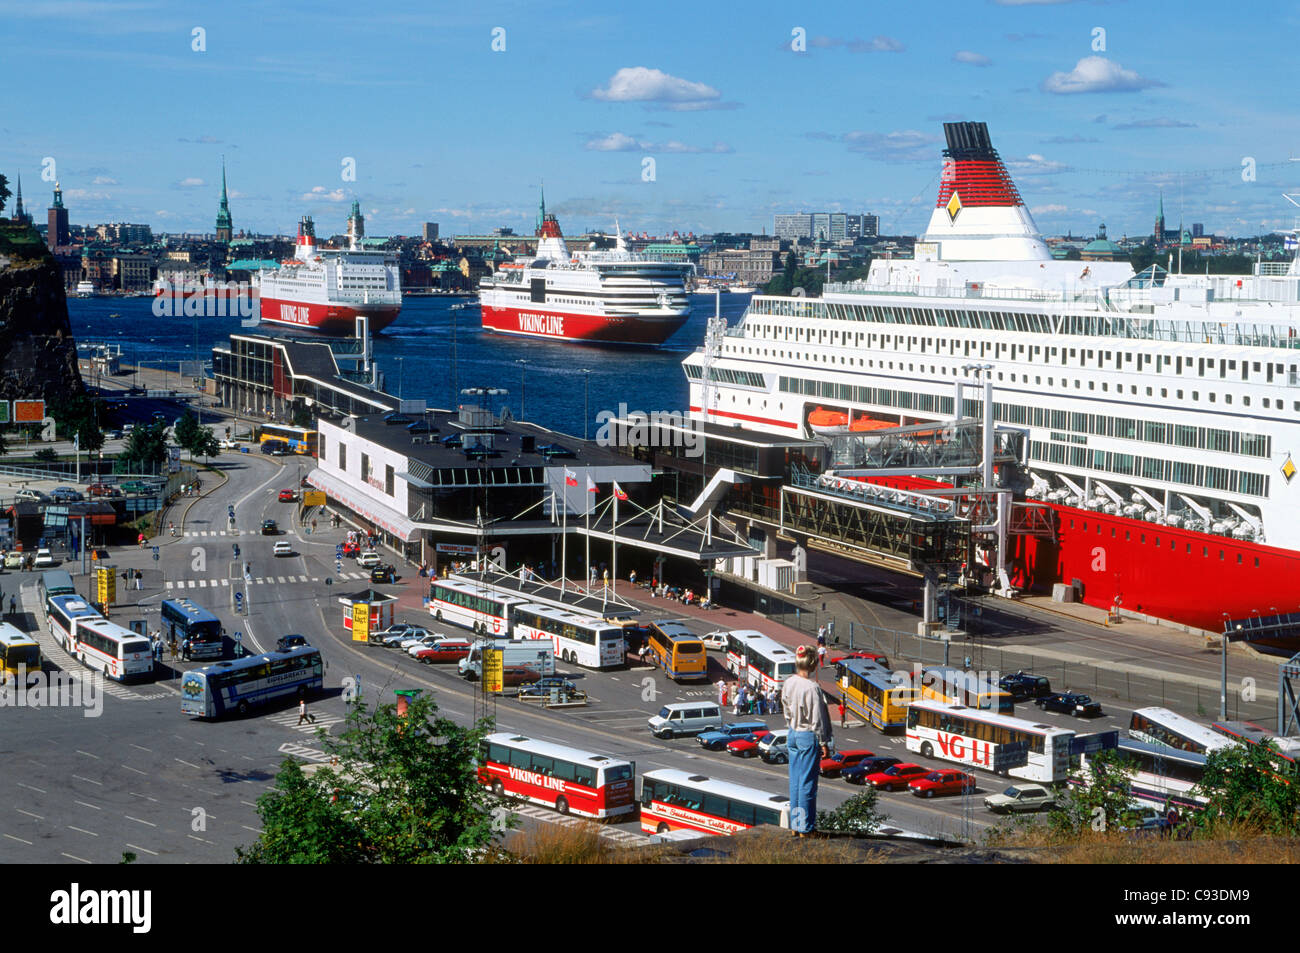 Passenger ferryboats and buses entering and leaving the docks in Stockholm - Stock Image